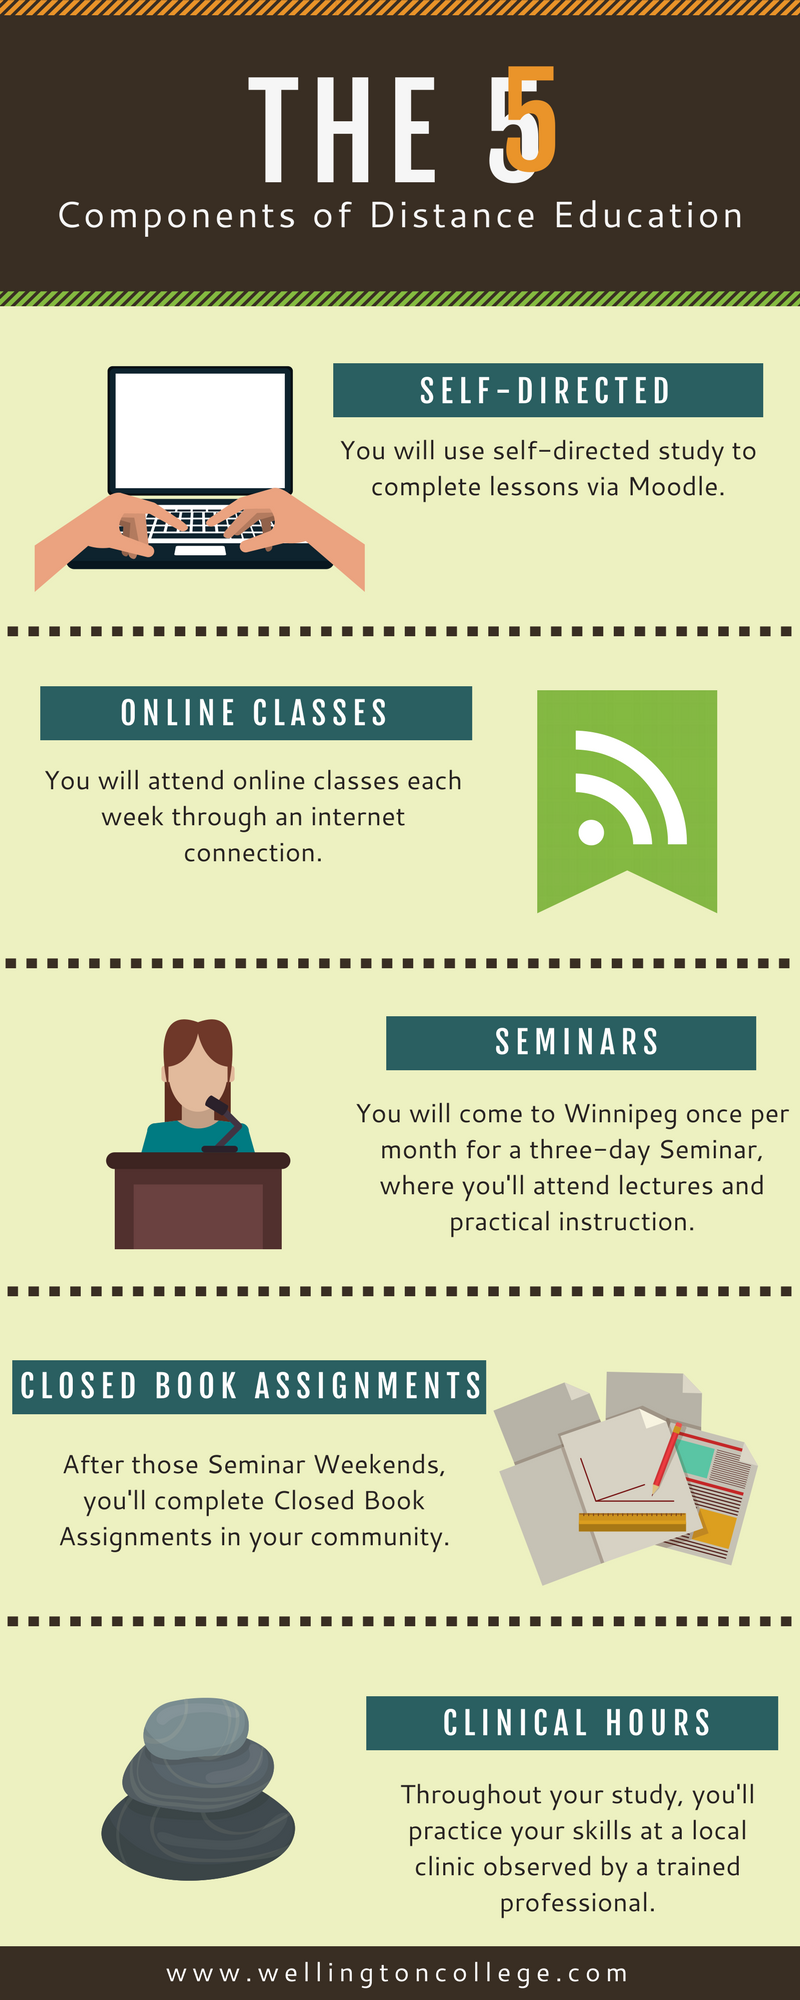 The 5 Components of Distance Education.png